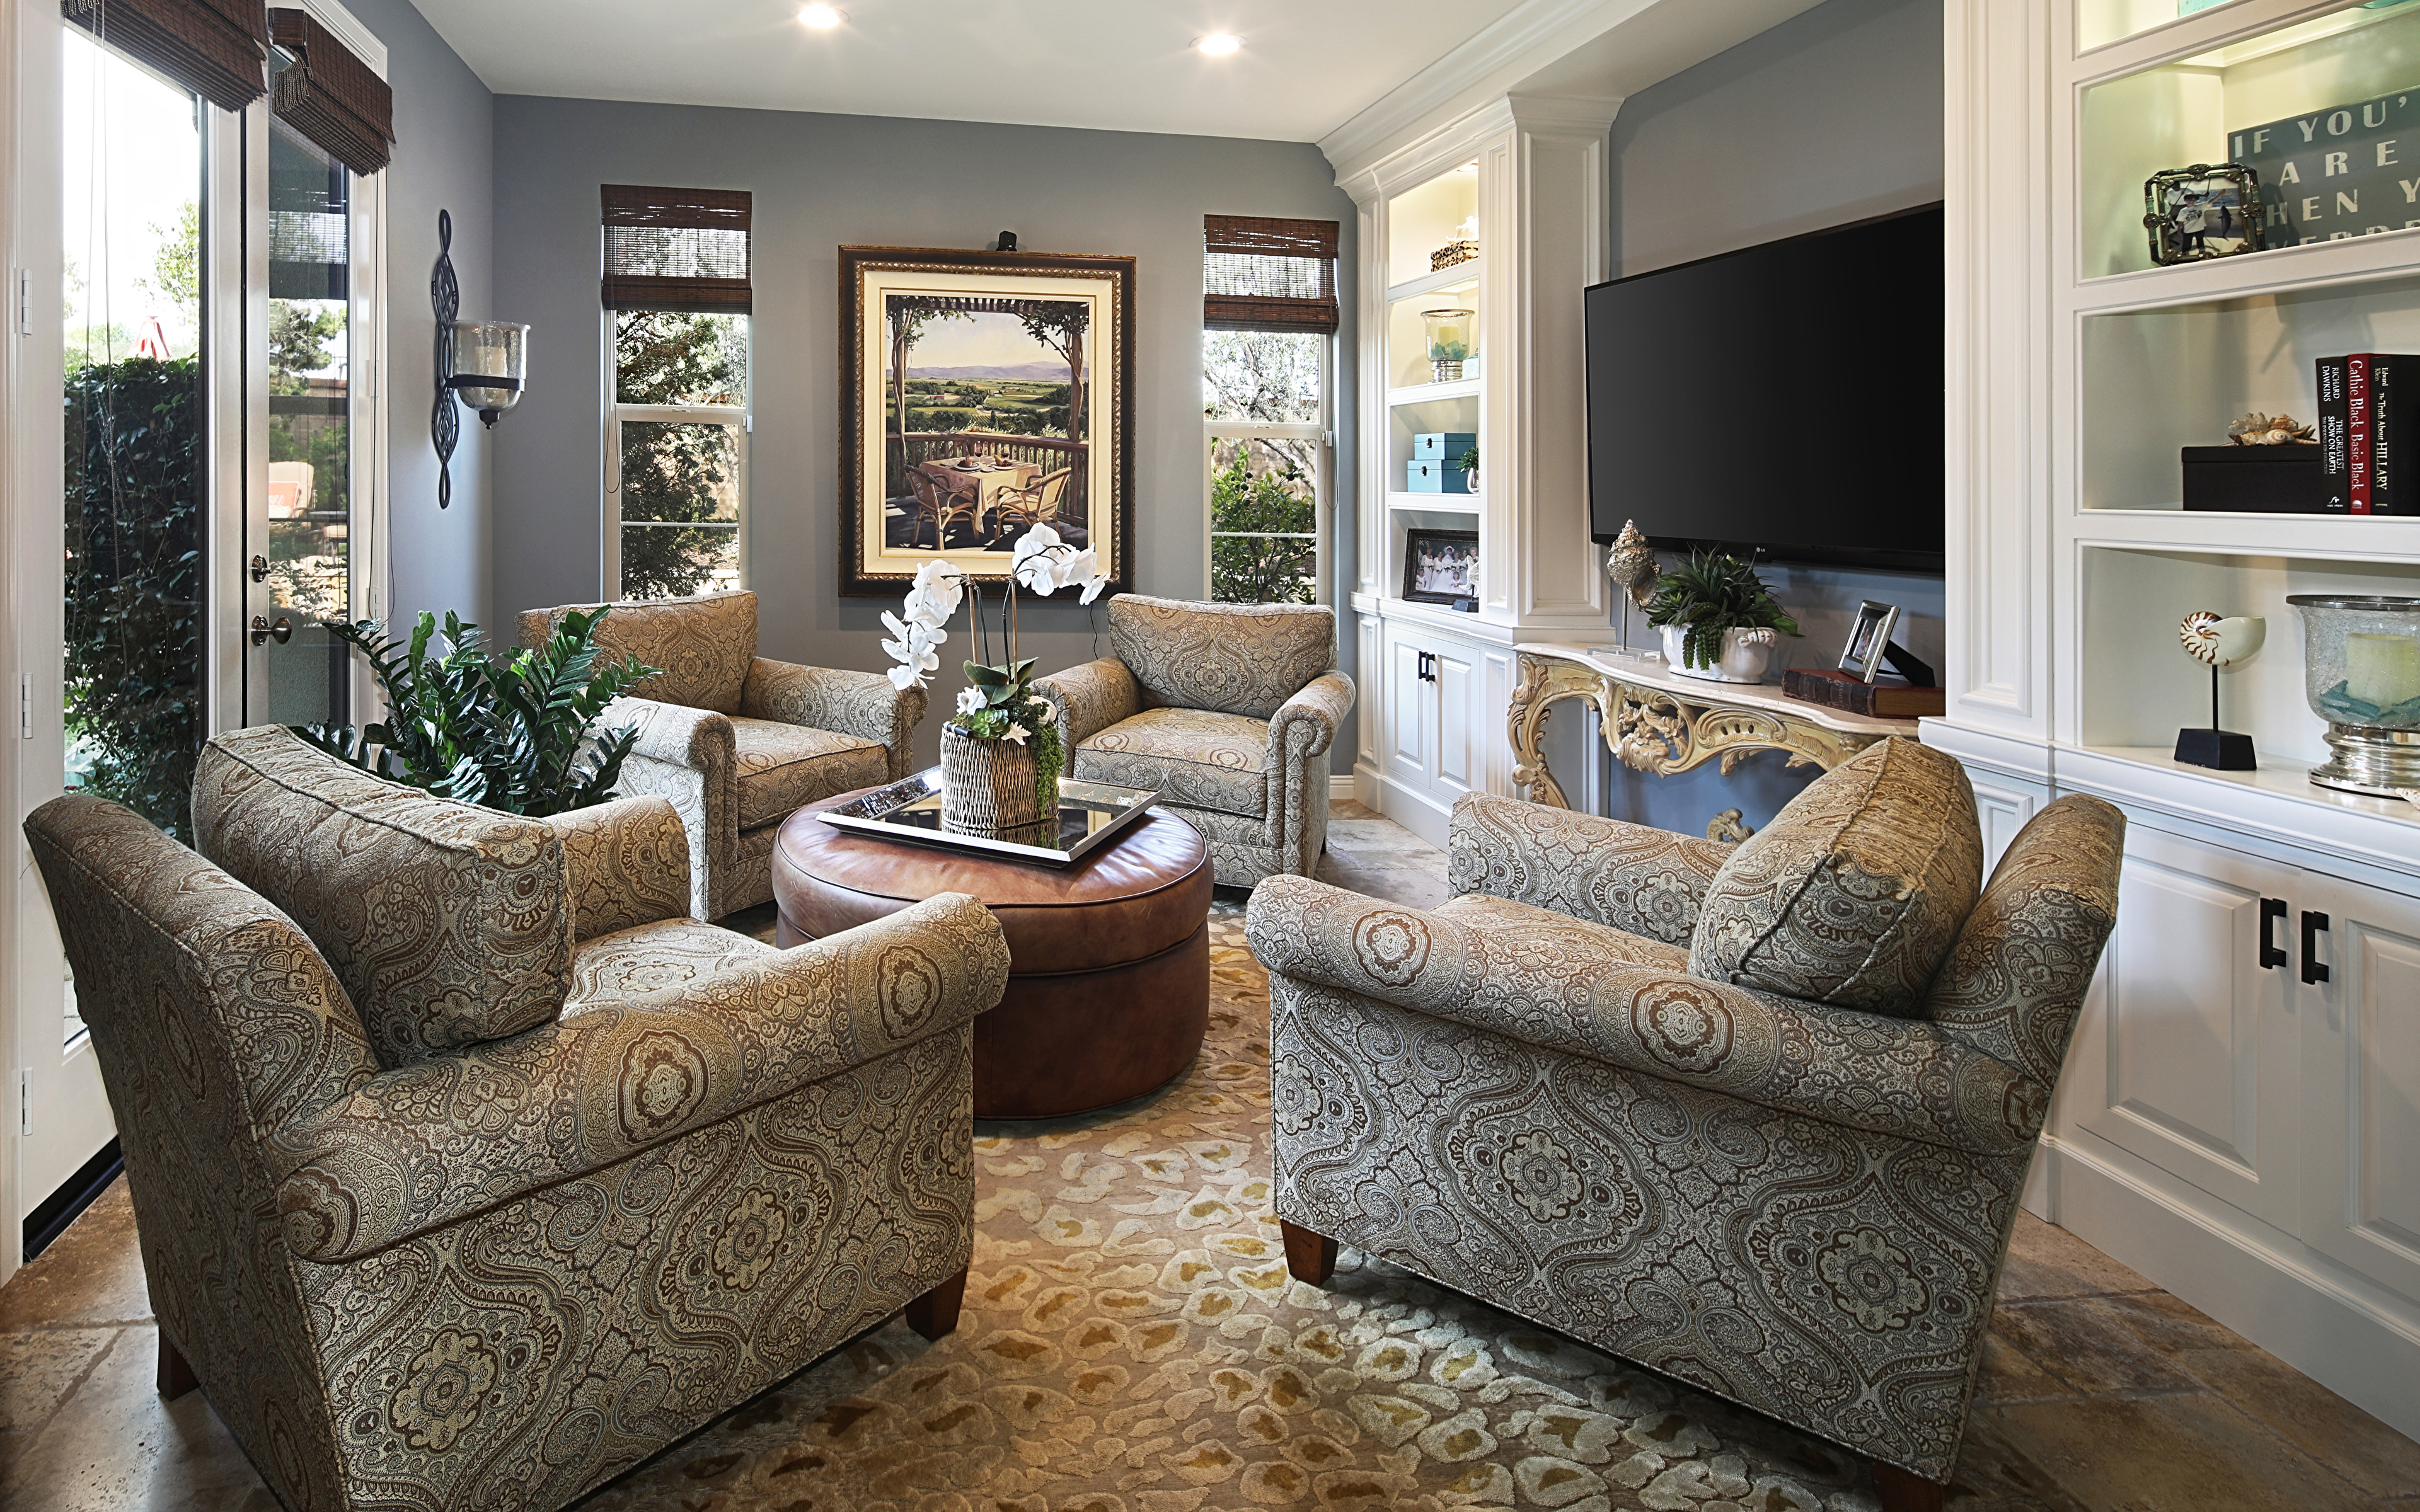 Photo lounge sitting room Interior Carpet Wing chair Design 3840x2400 Living room Rug Armchair